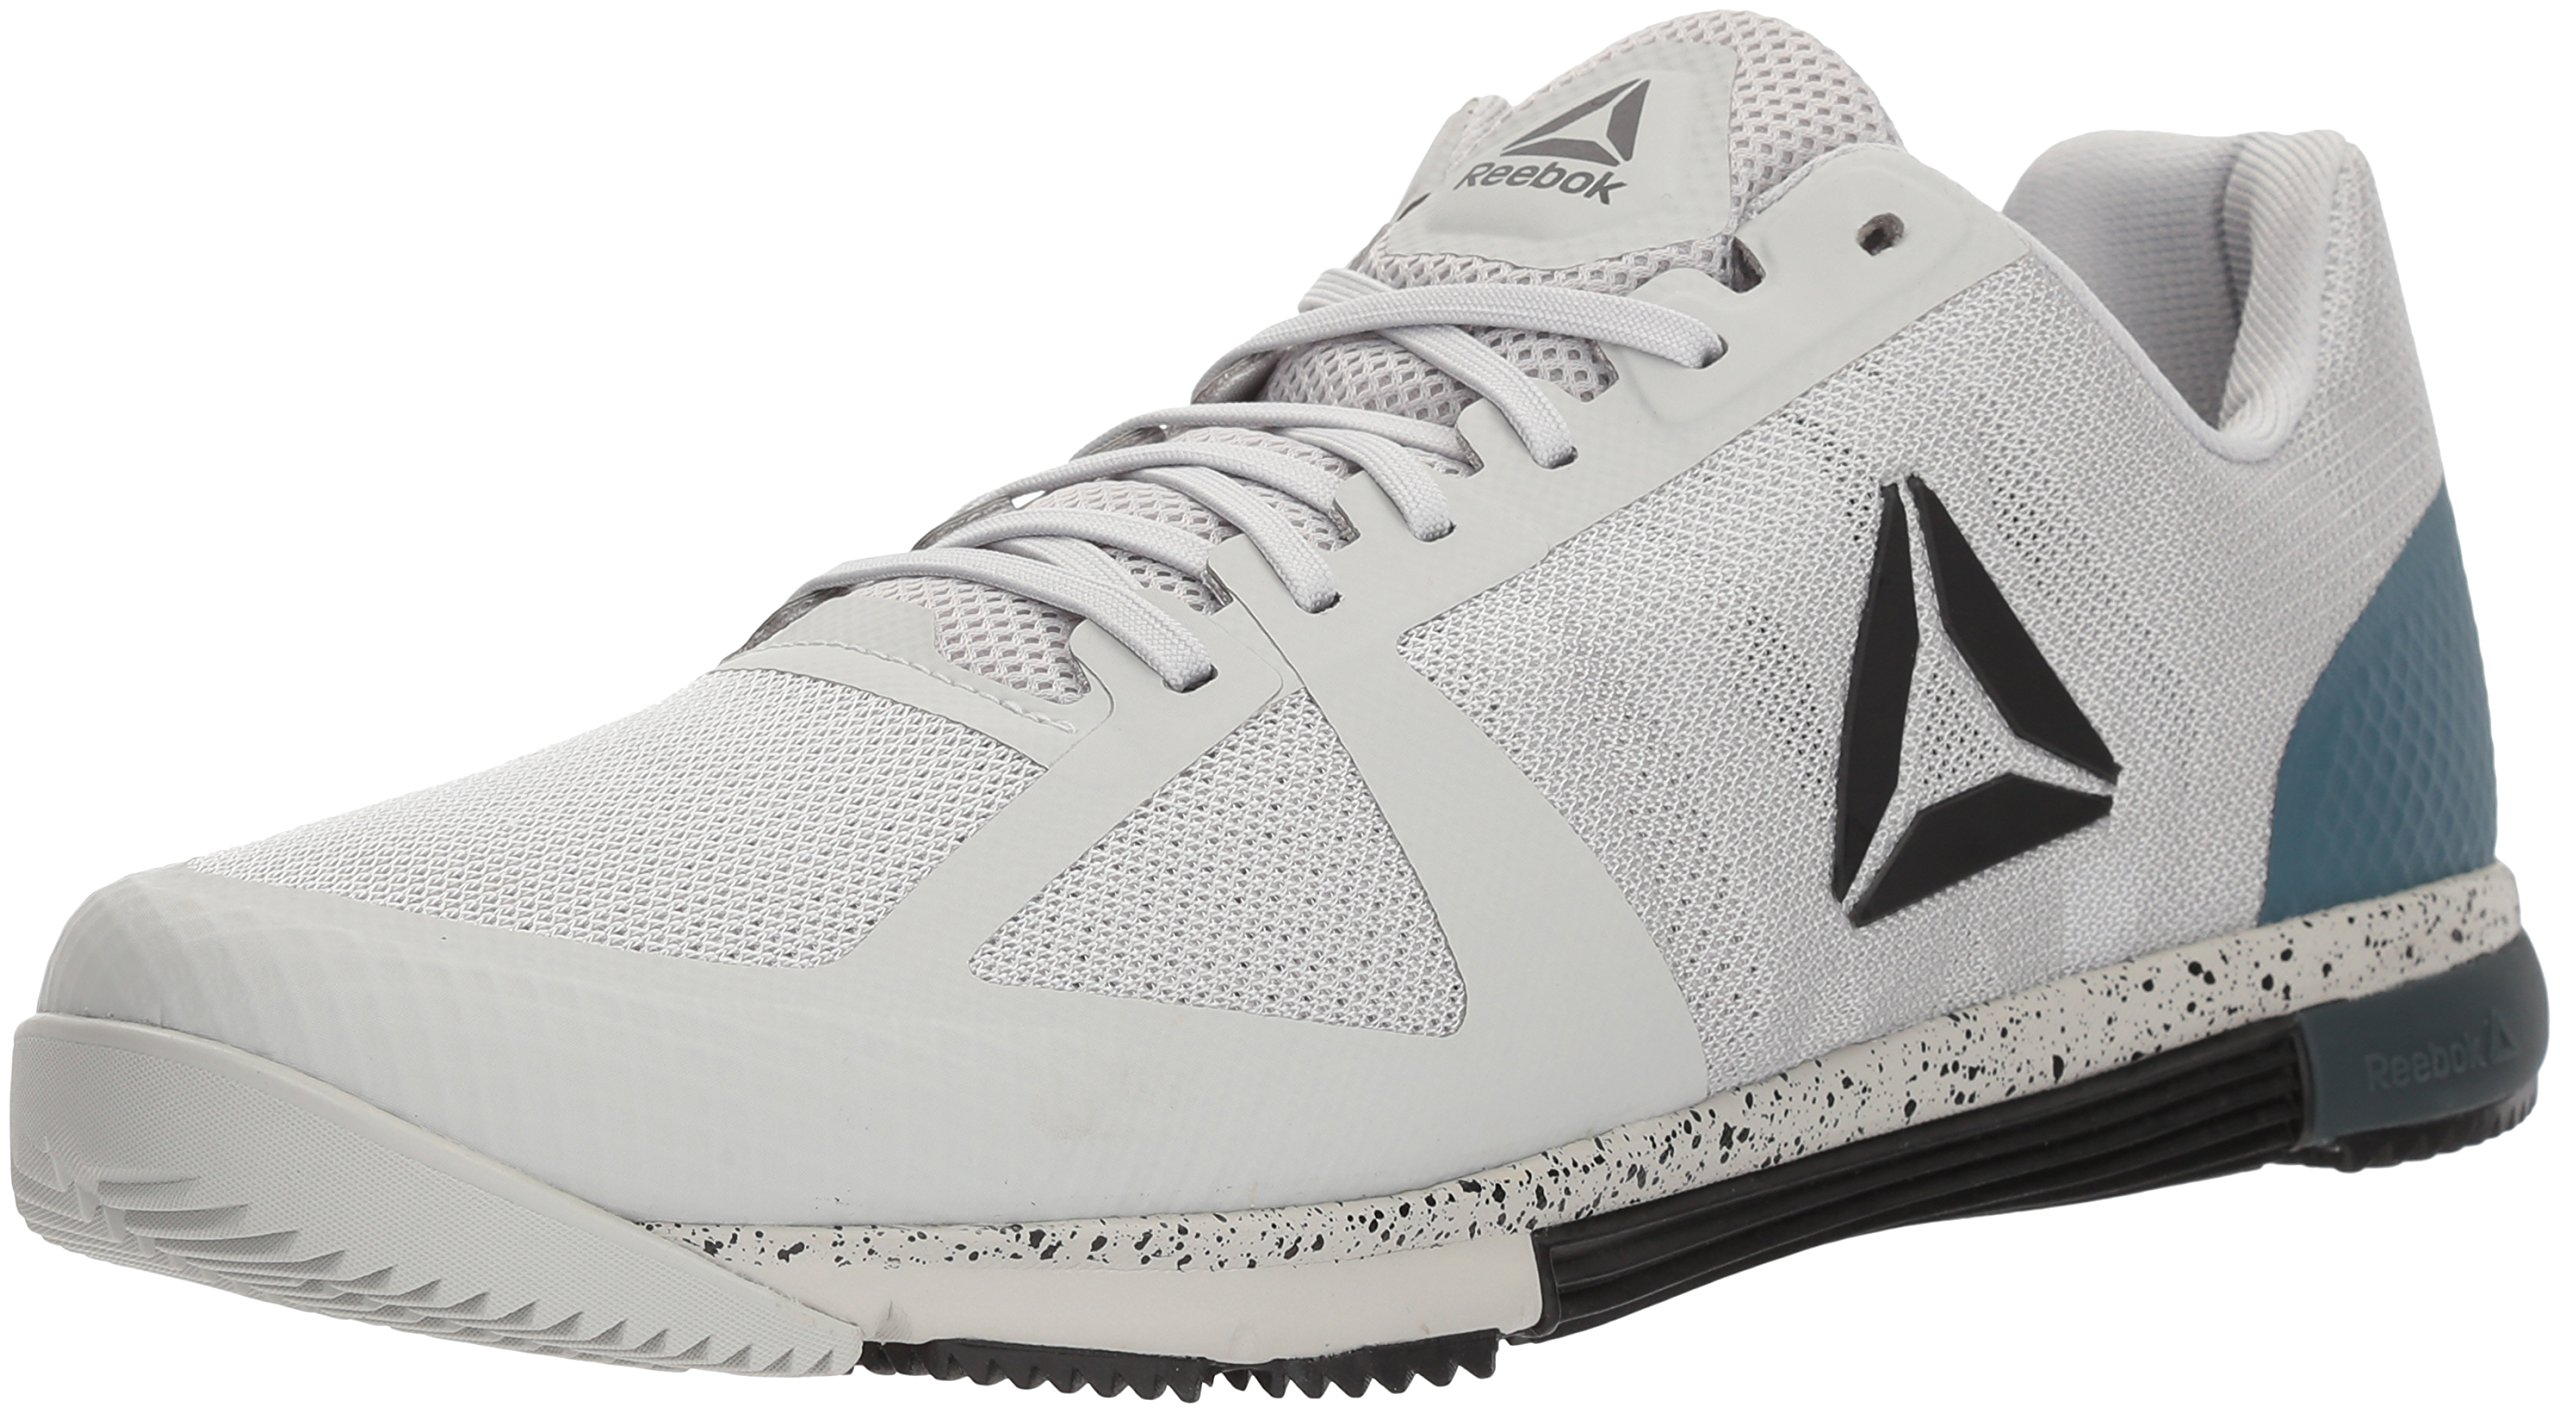 Buy reebok speed tr 2.0 womens 2016 | Up to 78% Discounts